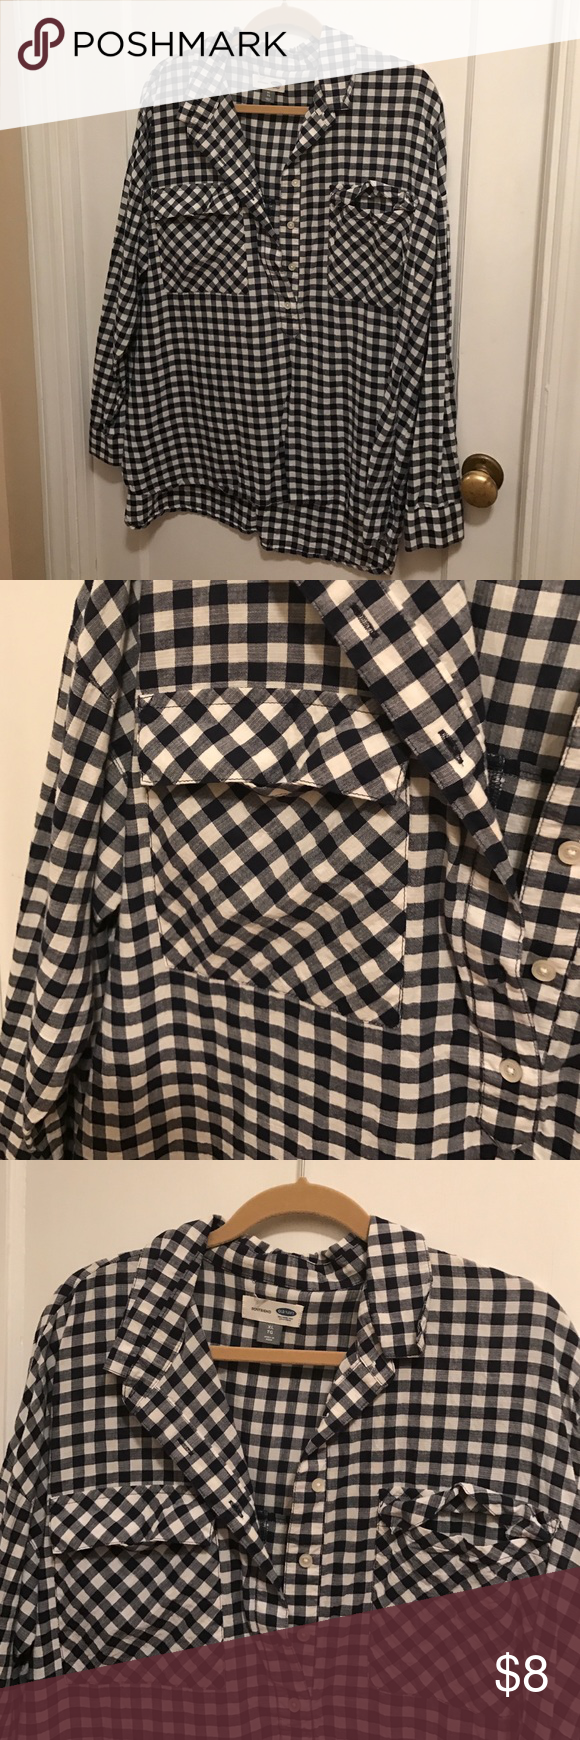 Xl boyfriend old navy top Oversized and comfy boyfriend fit half button up!  Navy and white check. Double pocket 100% cotton Tops Button Down Shirts